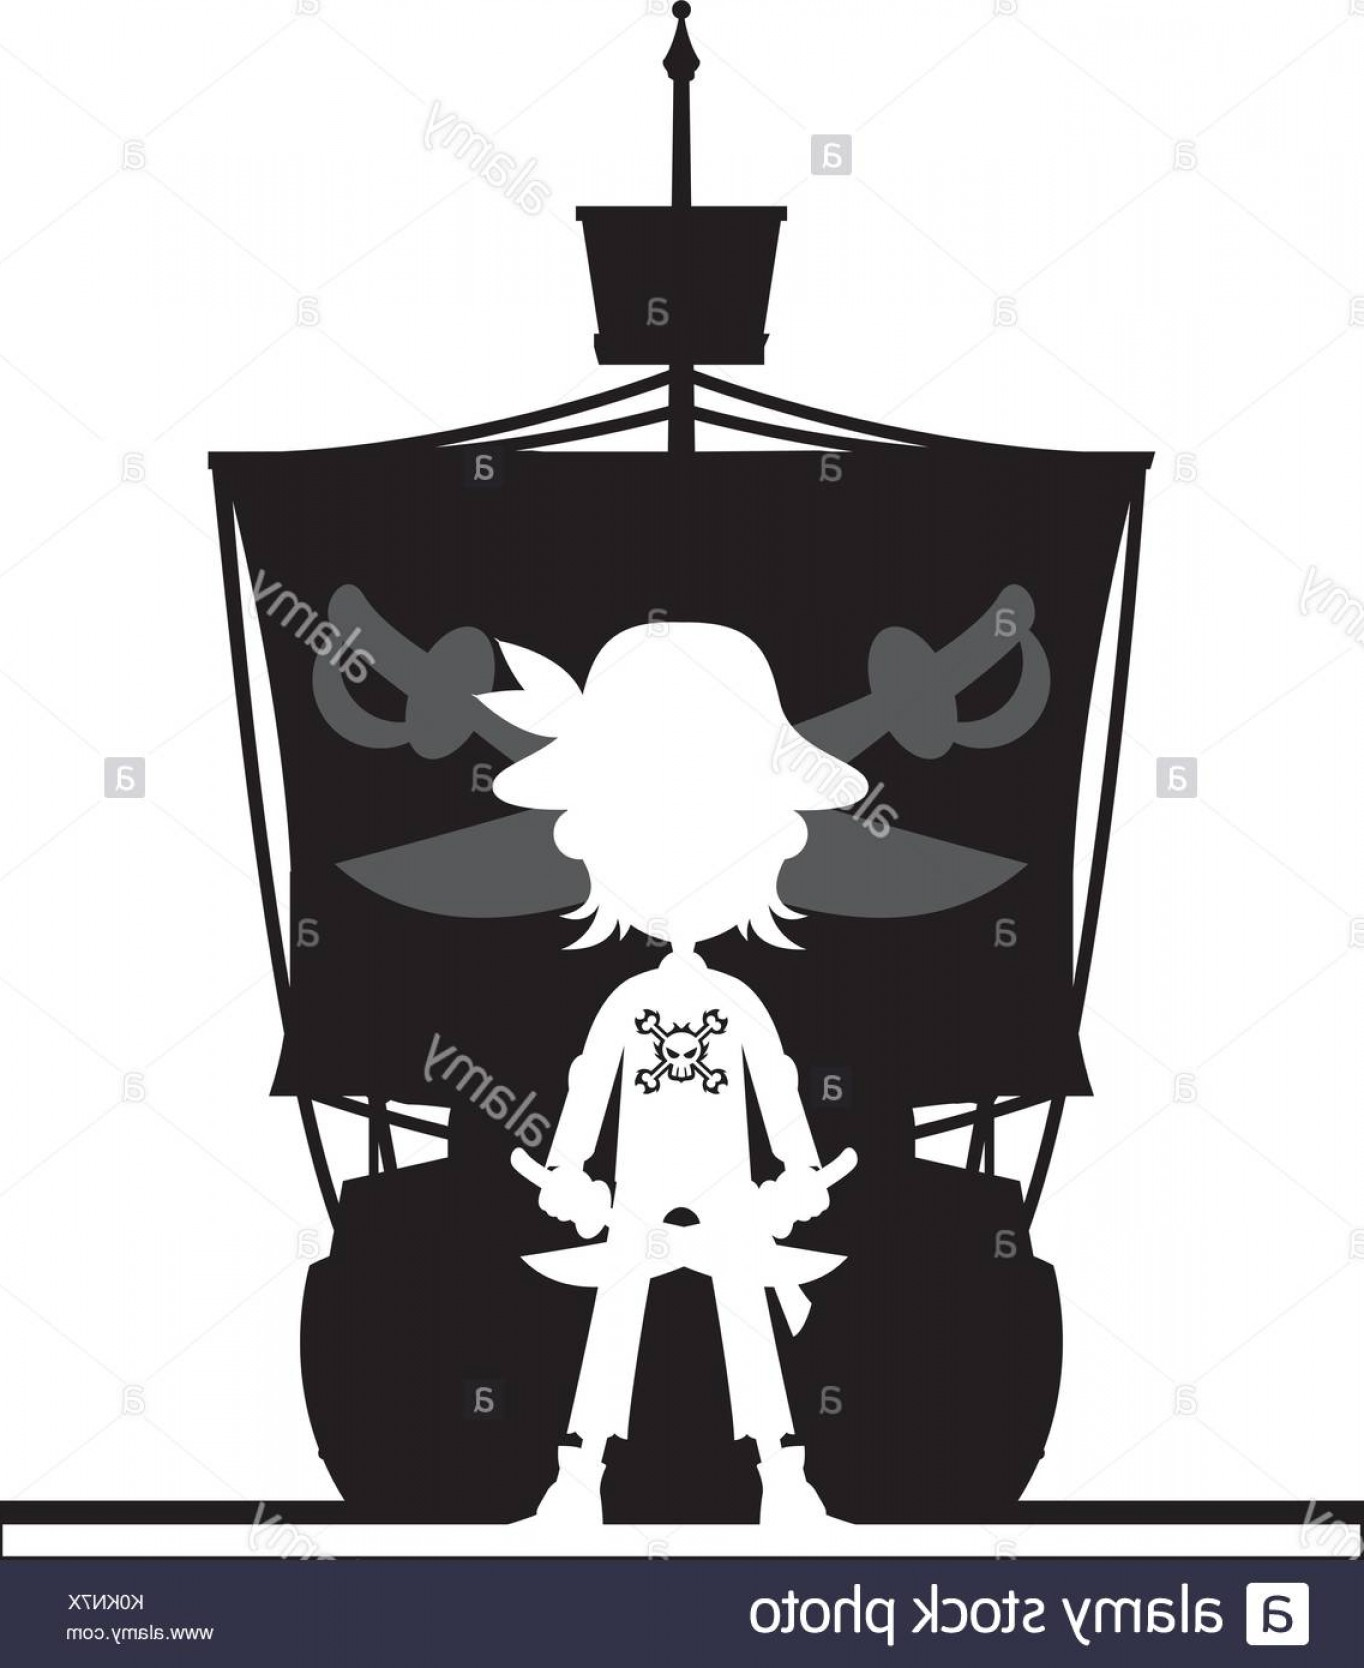 Cartoon Pirate Vector Art: Cartoon Pirate And Pirates Ship In Silhouette Vector Illustration Image